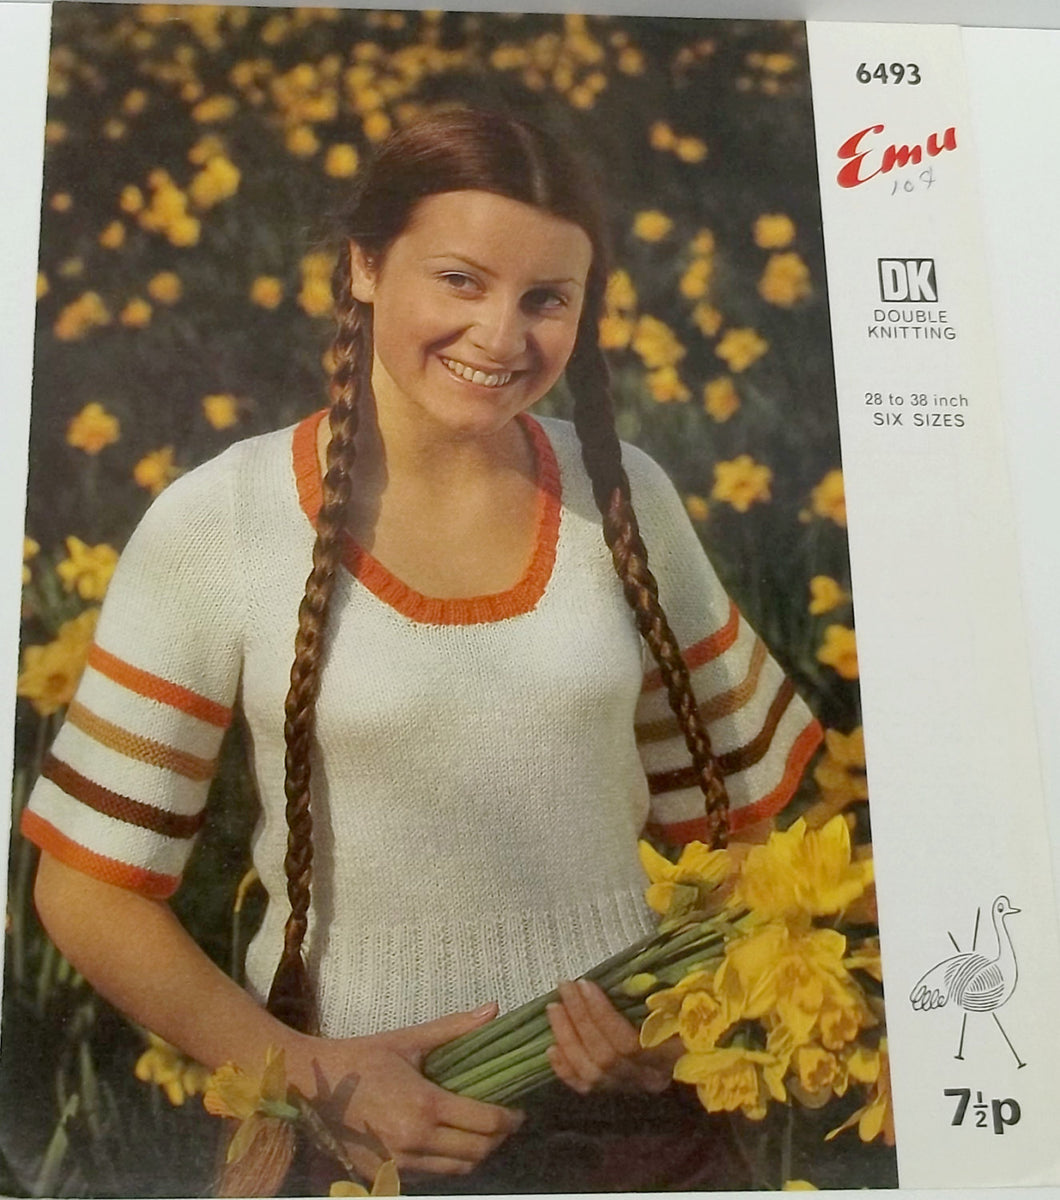 Vintage woman shirt knitting pattern size 28/38 by Emu no 6493,woman knitting pattern, knitting pattern,shirt knitting pattern